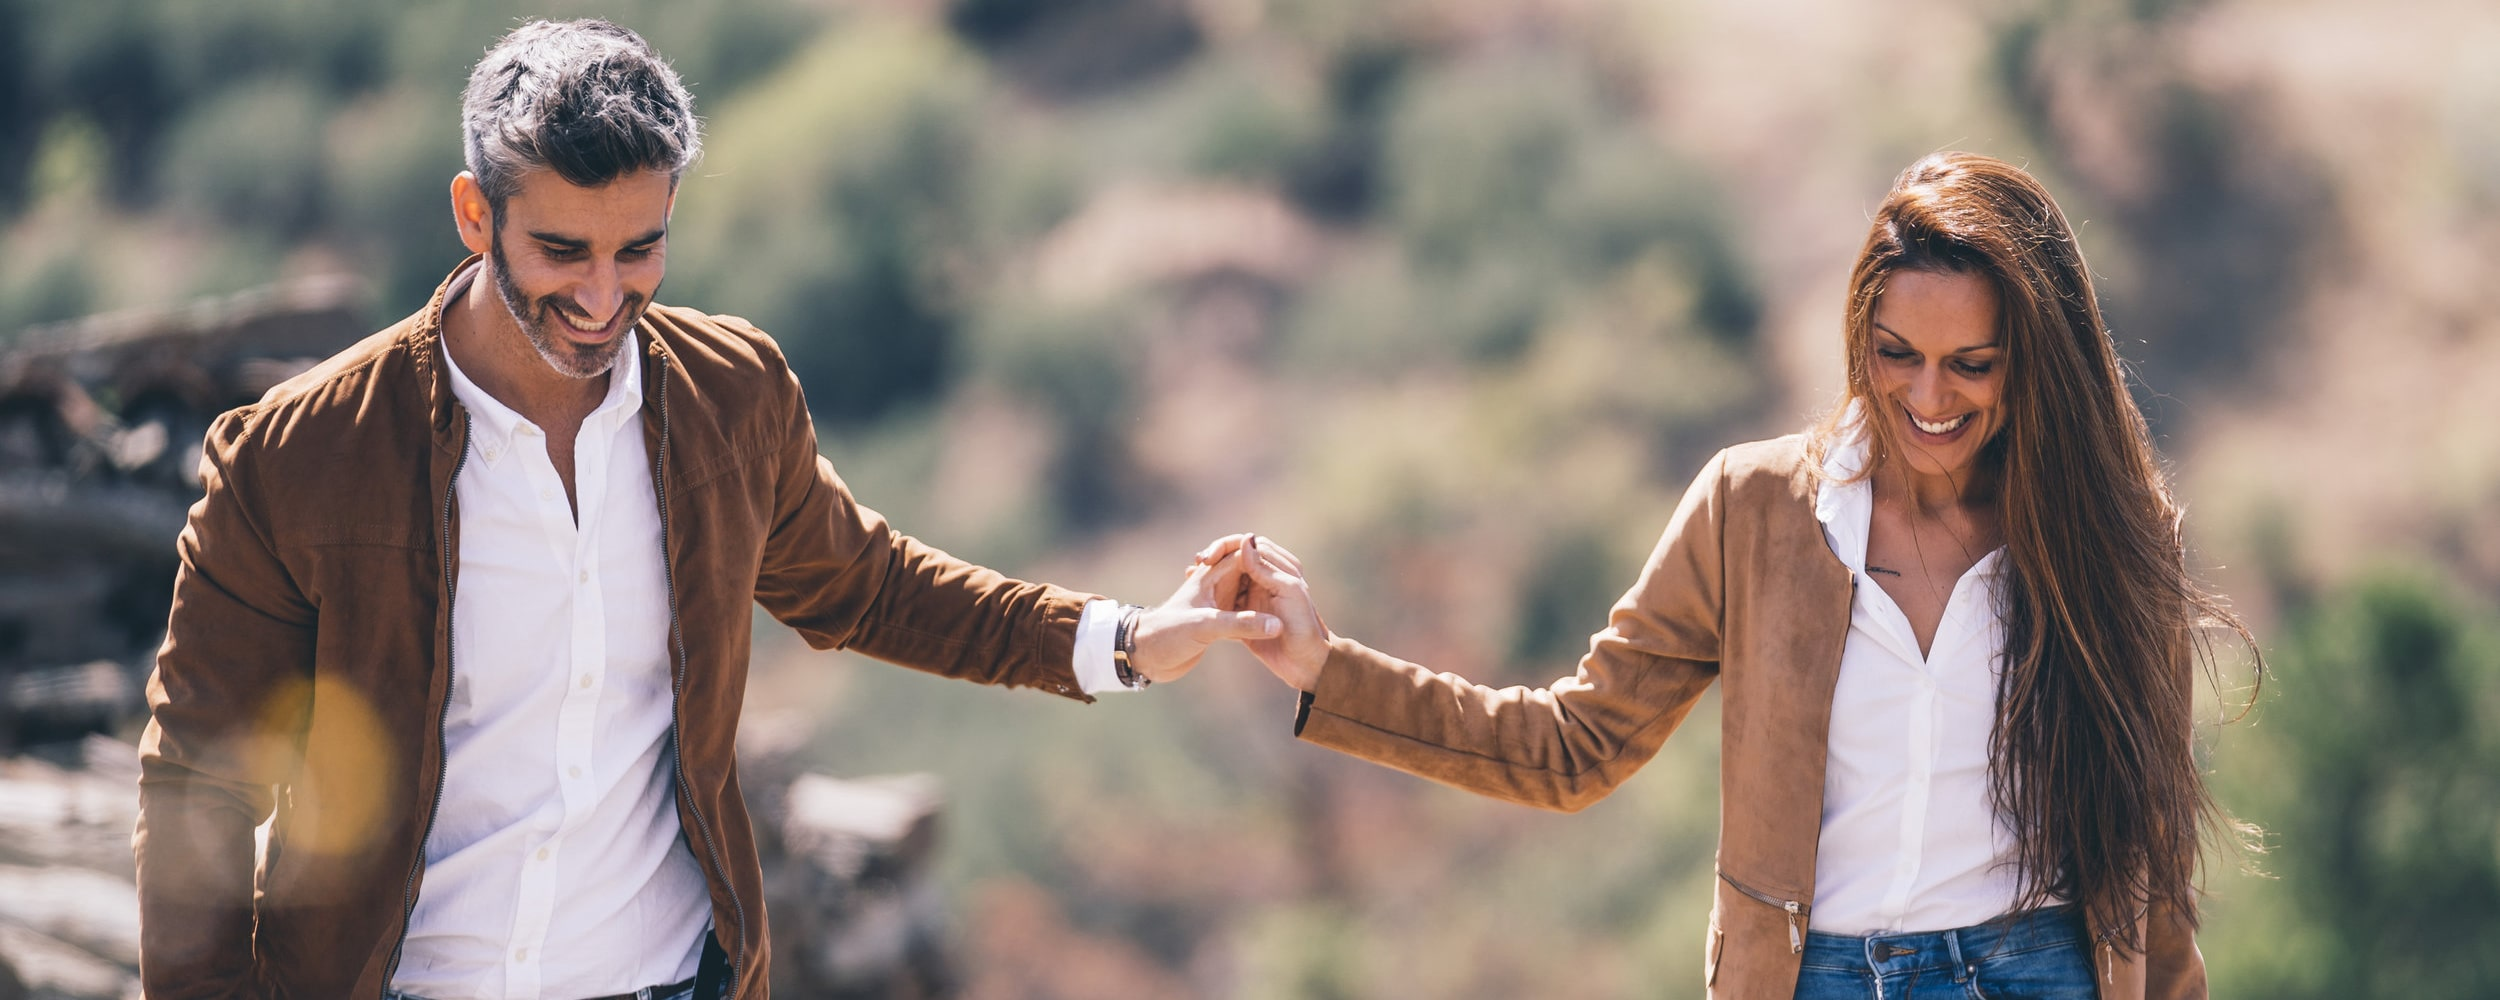 Matchmaking services: why you should try